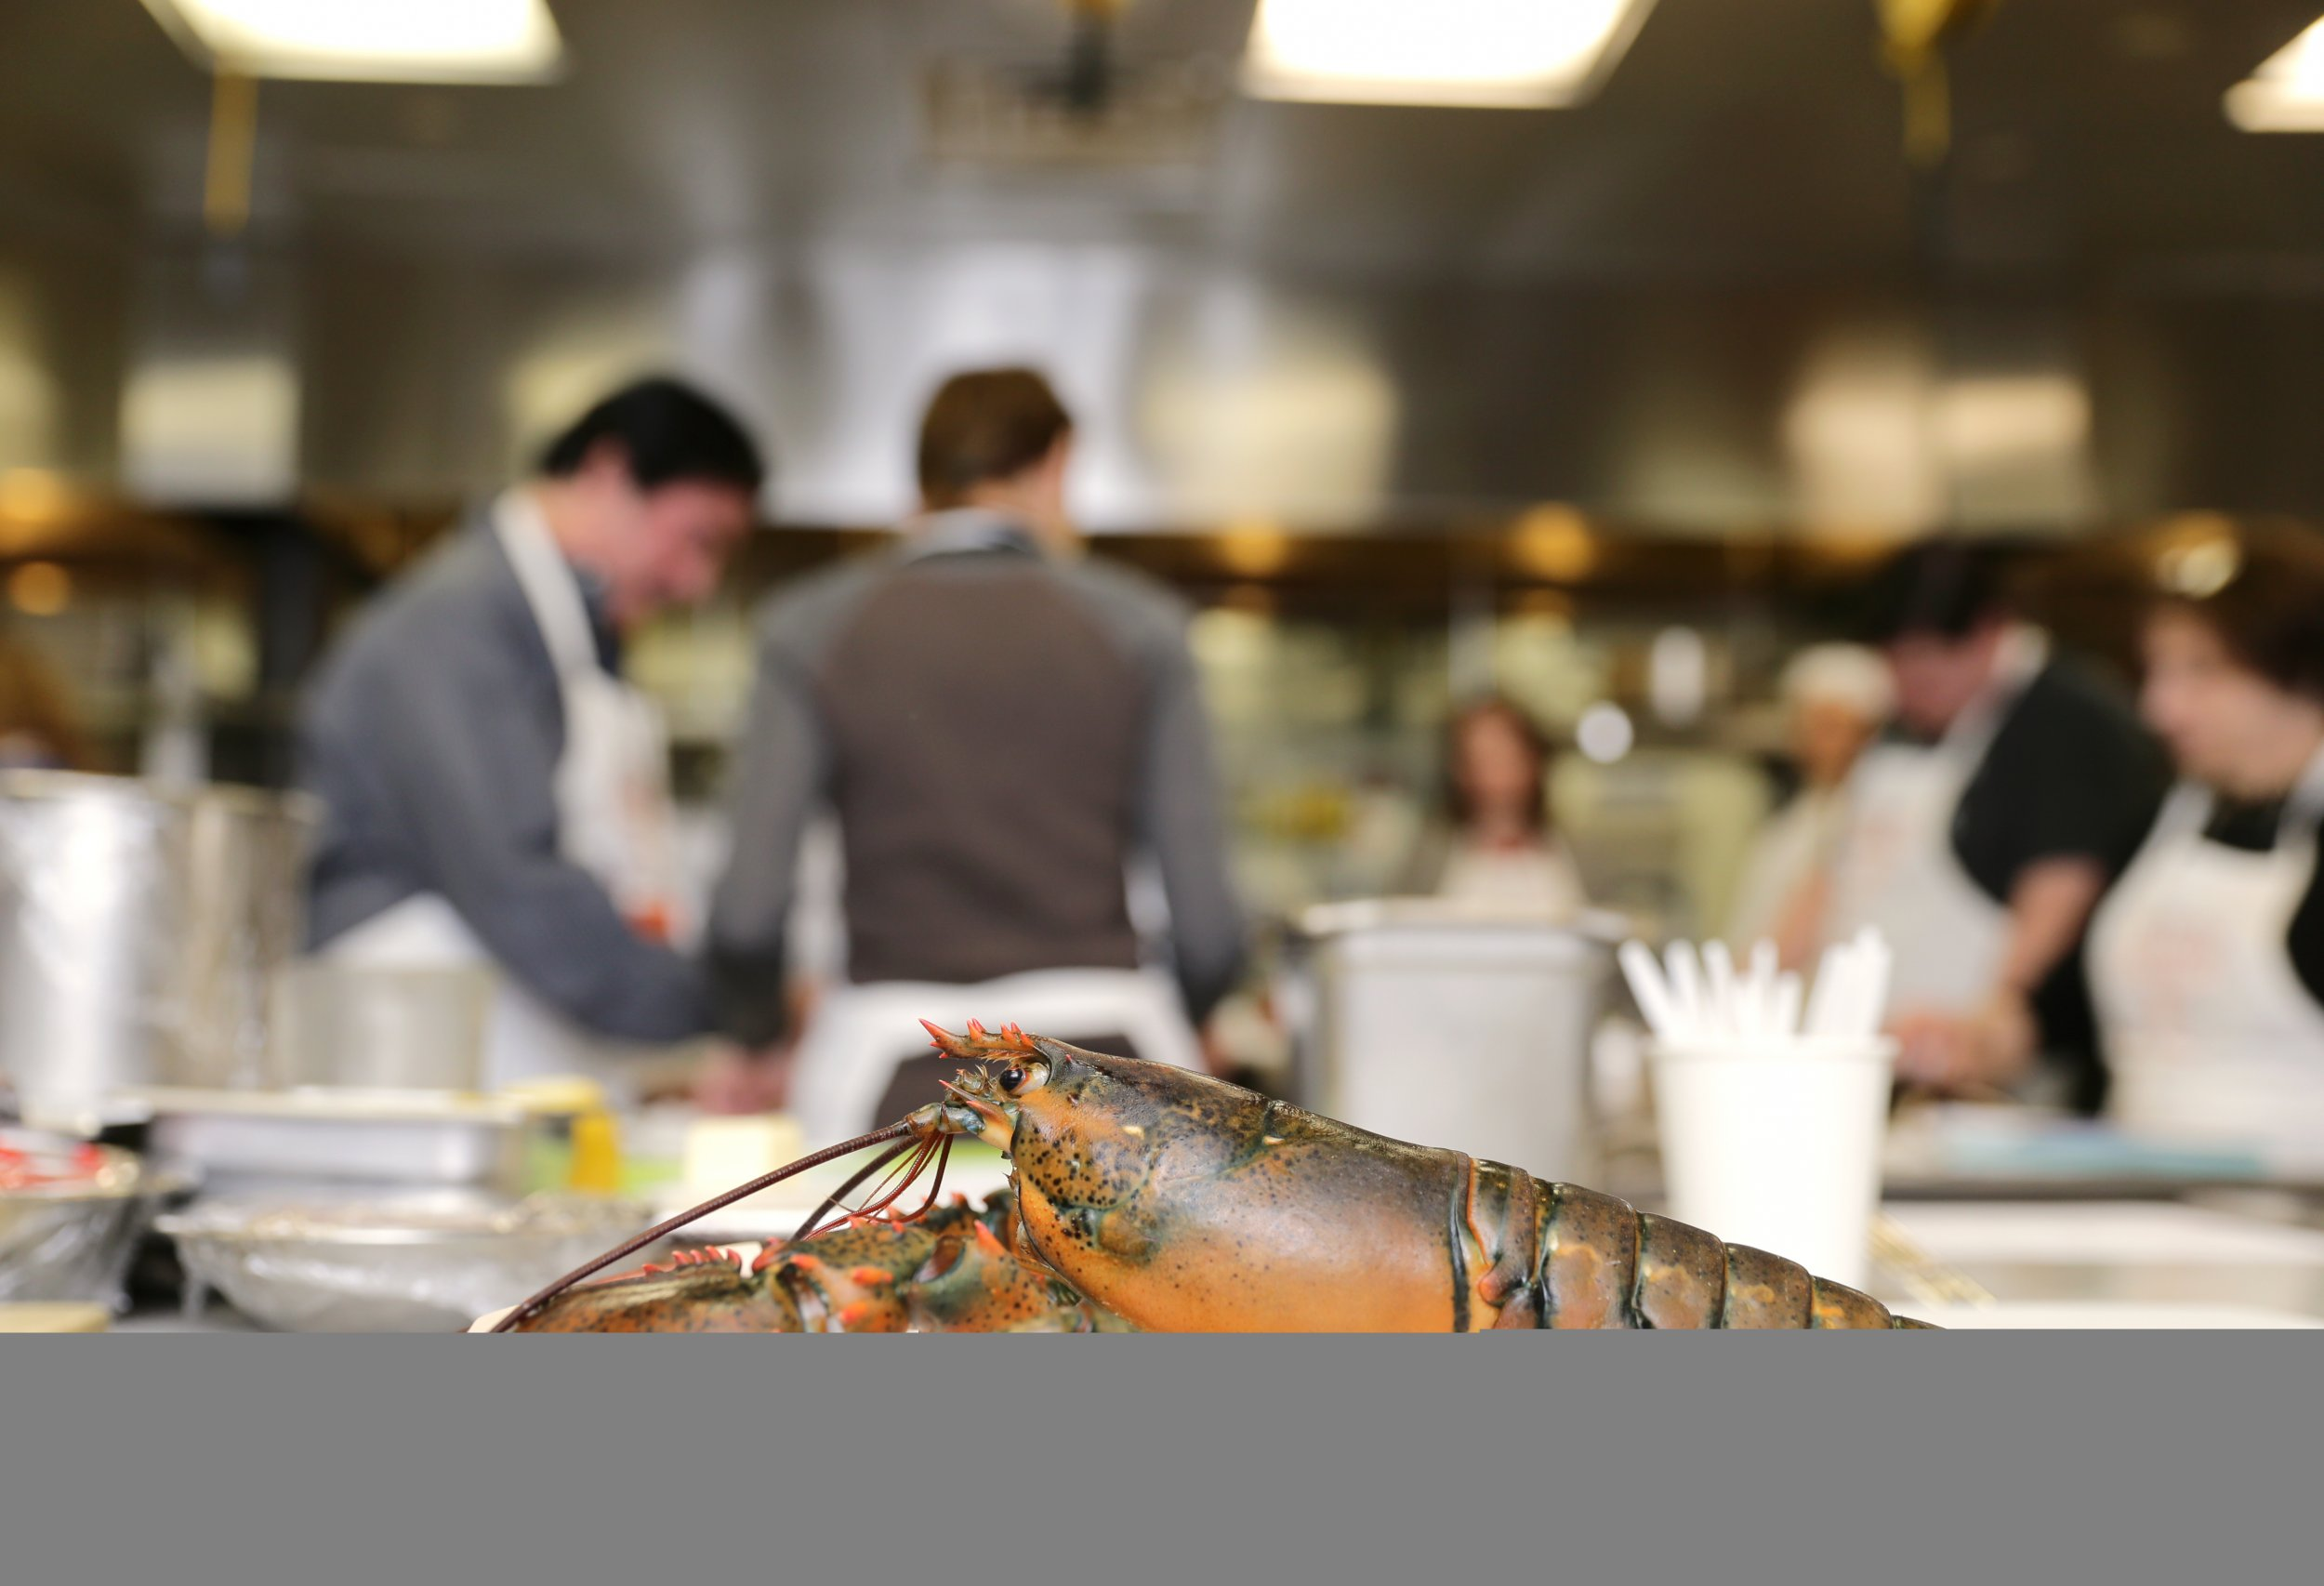 an analysis of the morality of boiling lobsters alive in consider the lobster an article by david fo What is the difference between boiling crabs/lobsters alive why must a chef cook a lobster live why don't chefs kill lobsters instead of boiling them alive.